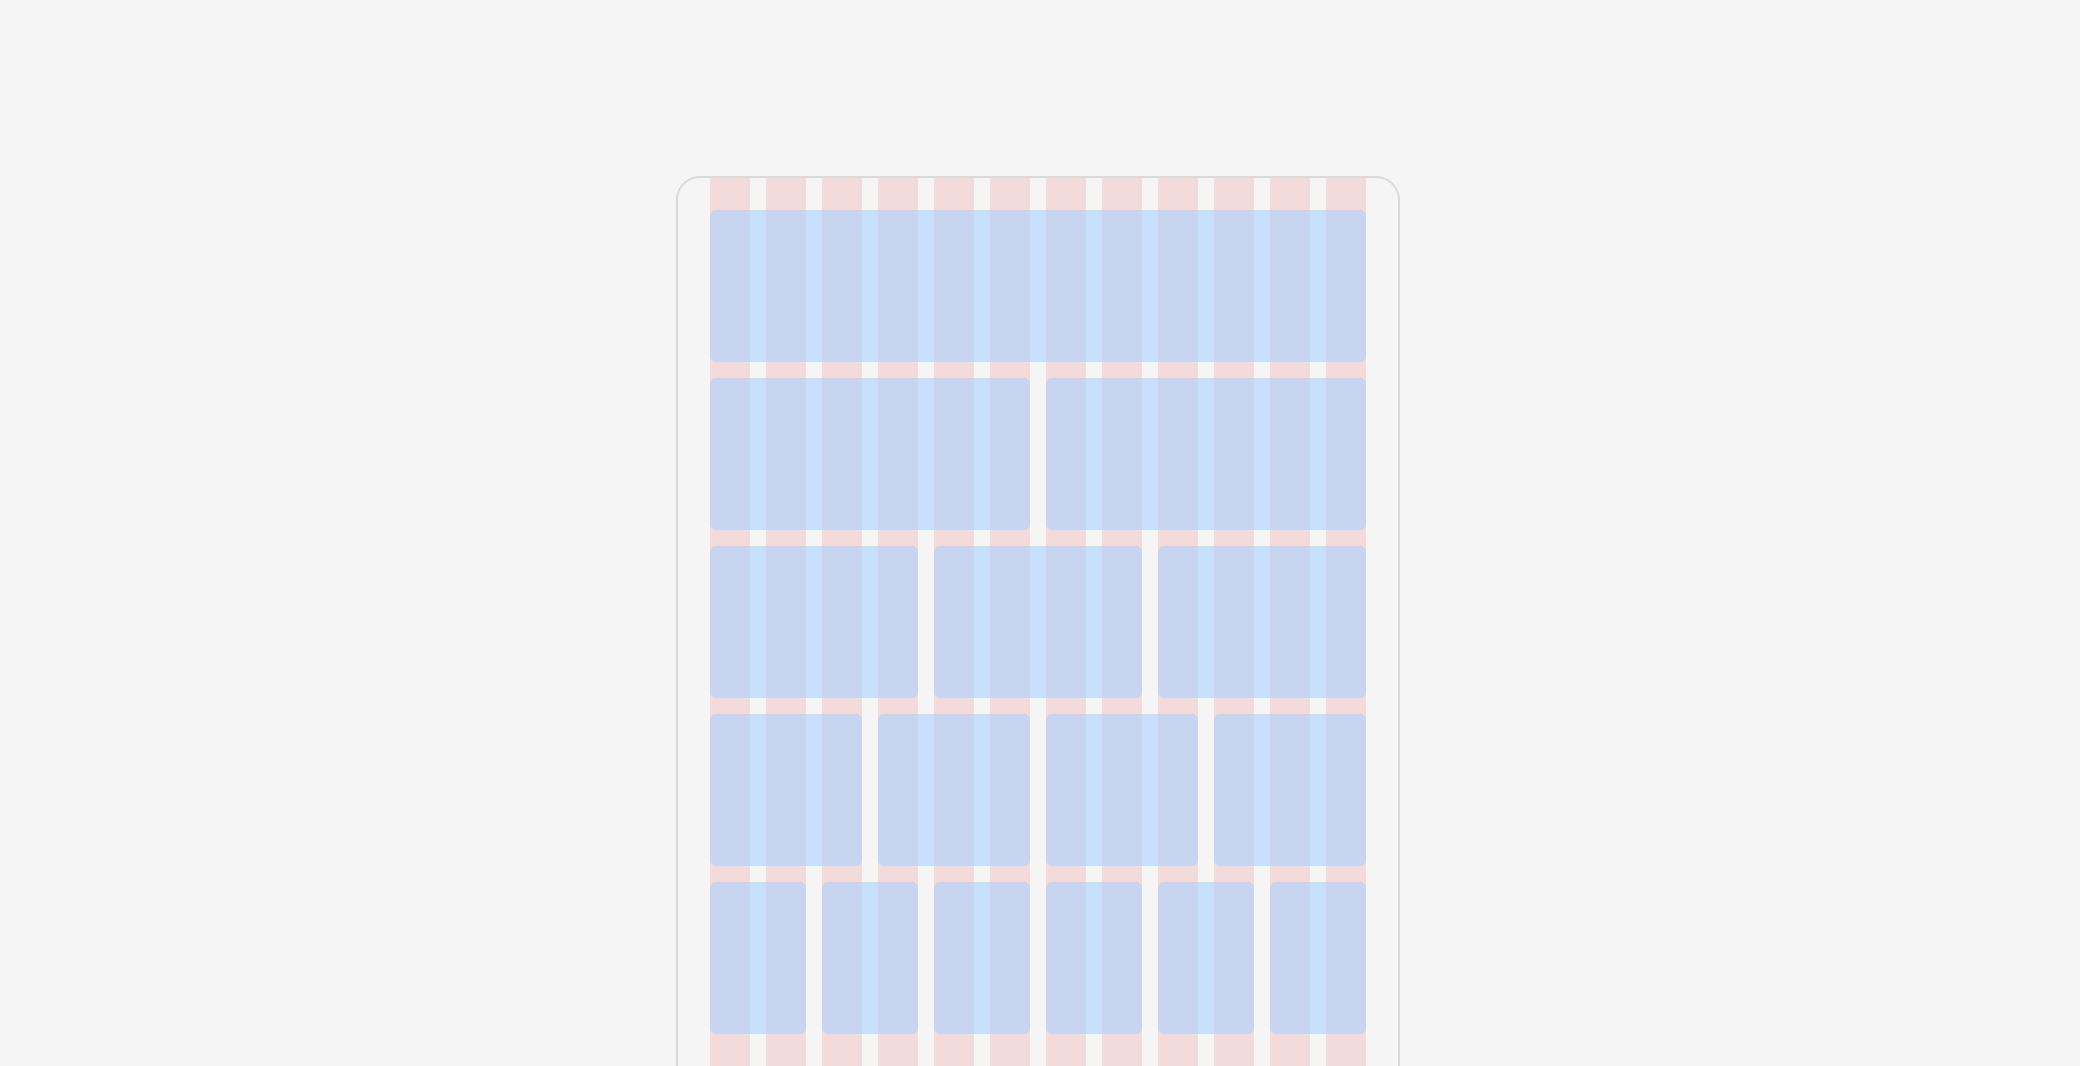 Digging Deep In Layout Grids In Mobile App Design By Andrey Zhulidin Ux Collective